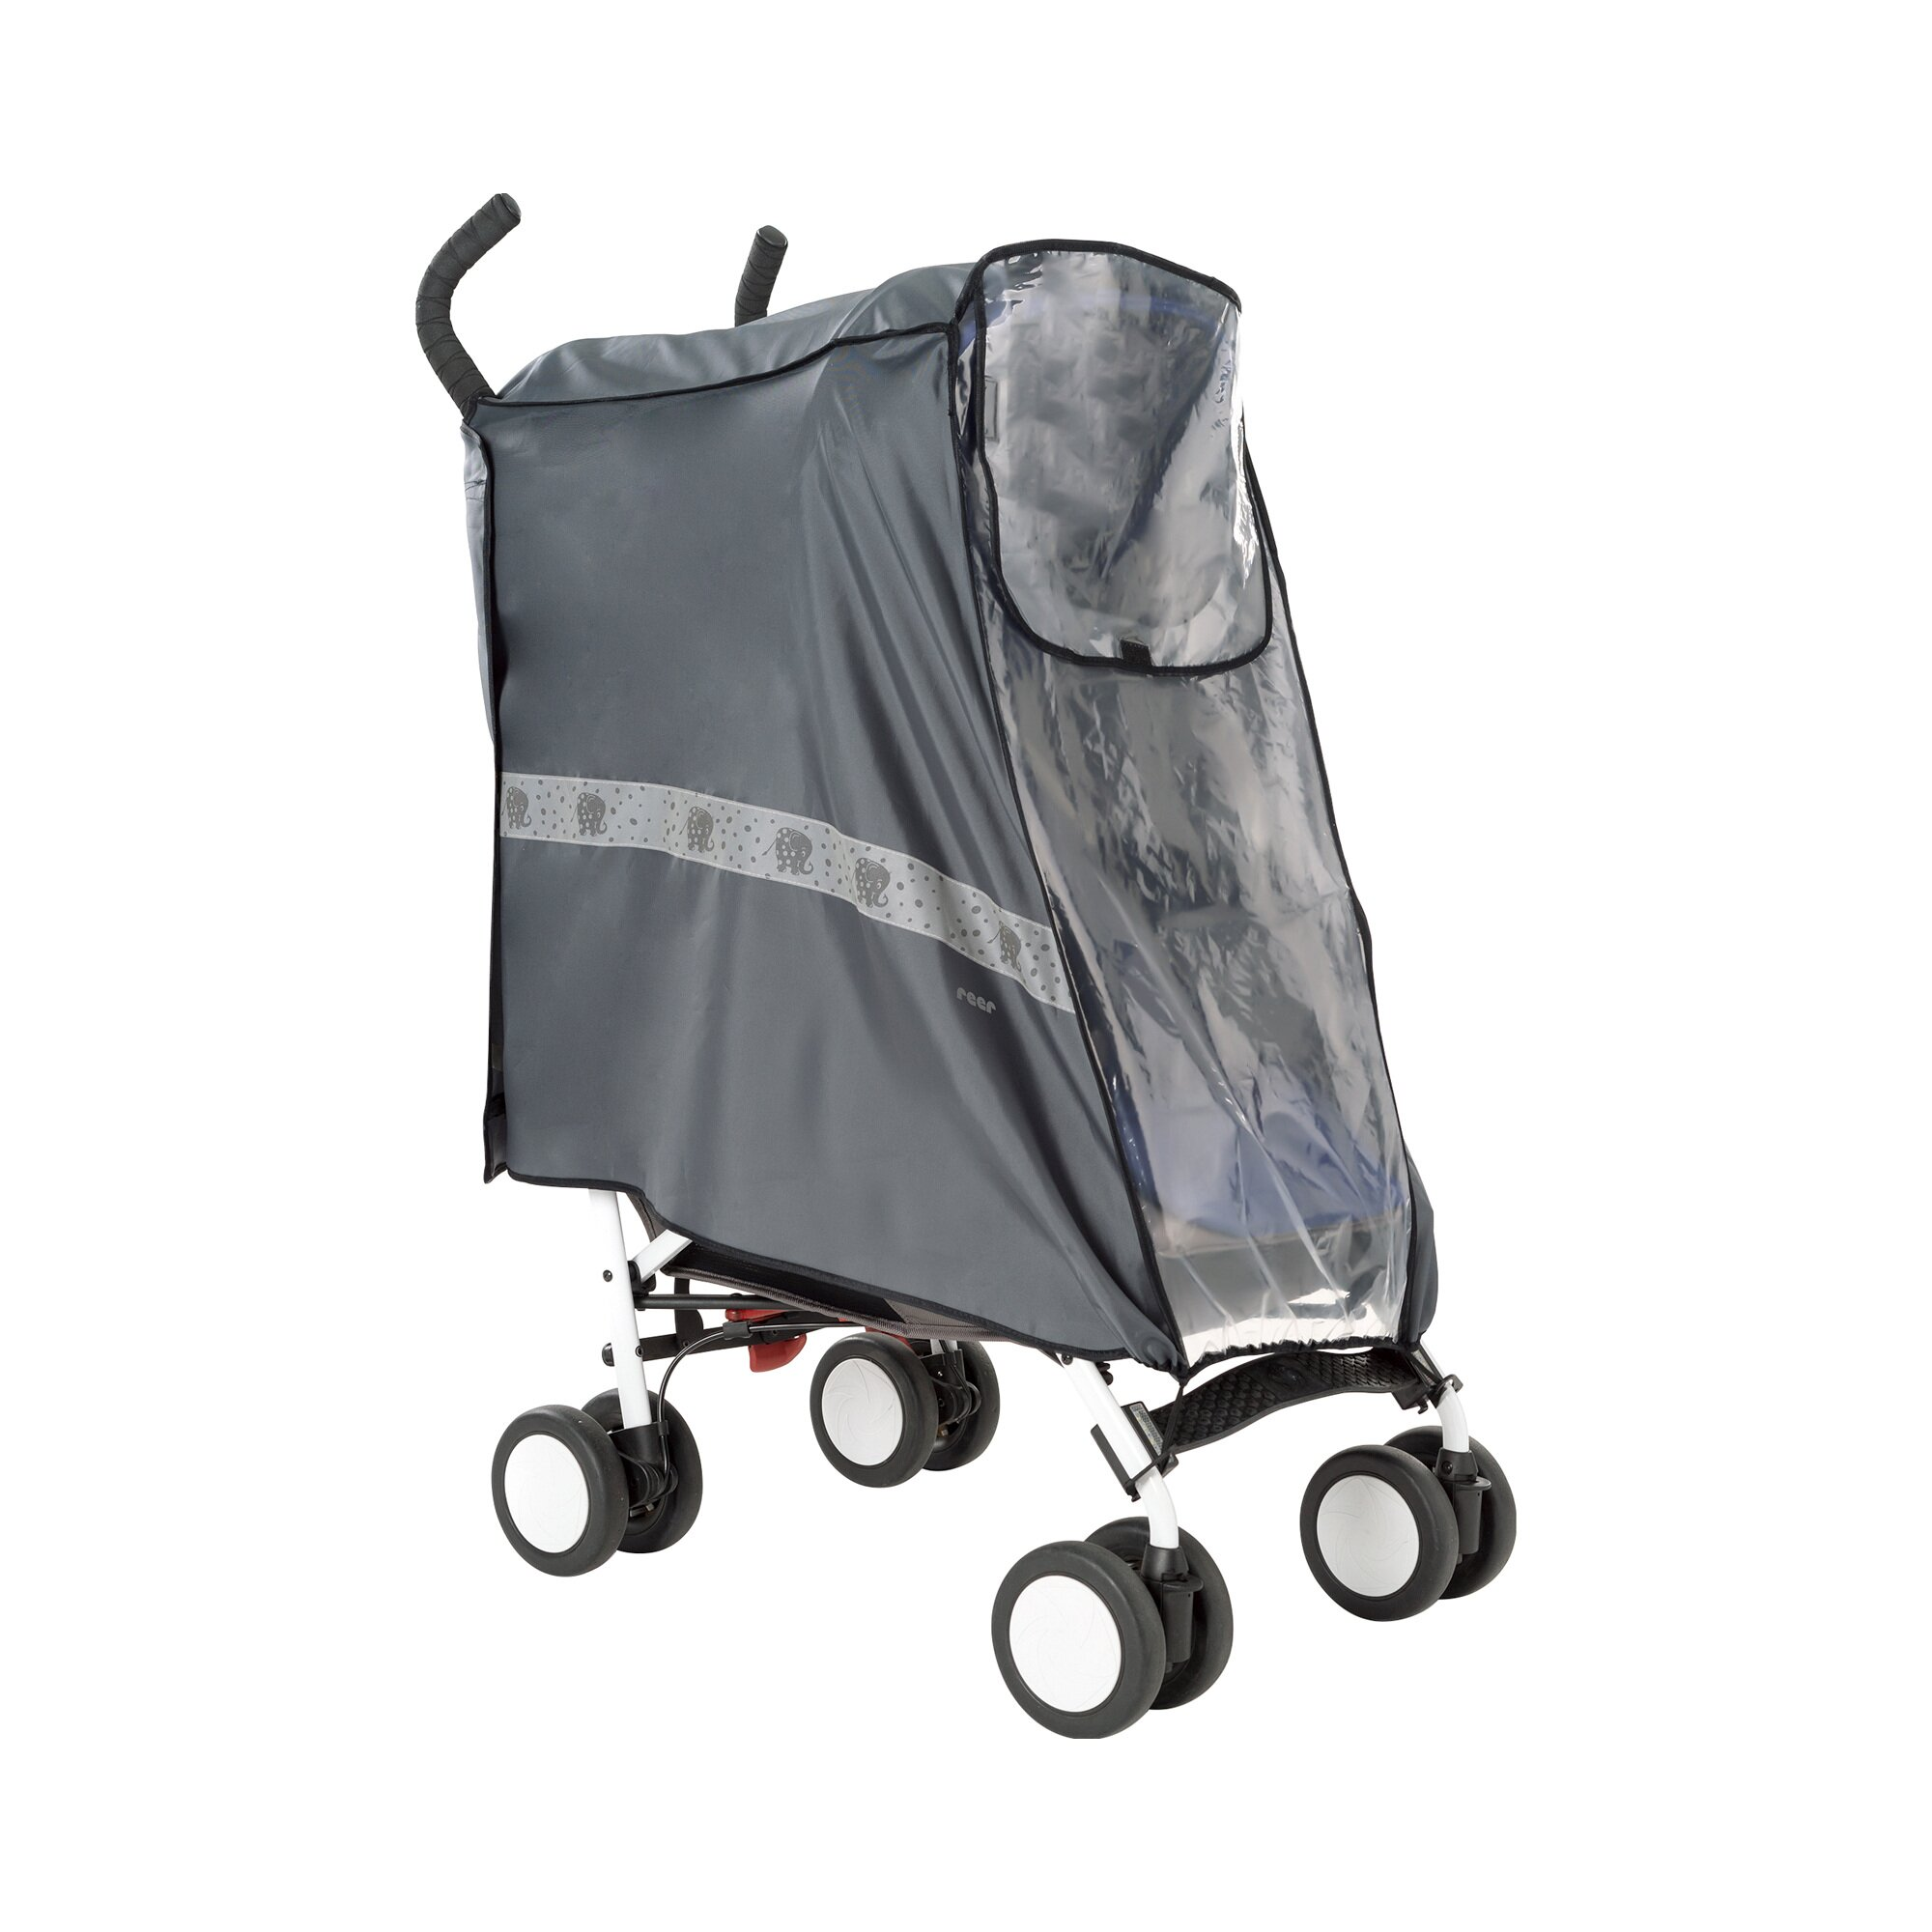 reer-regenschutz-rainsafe-active-fur-buggy-kinderwagen-sportwagen-transparent